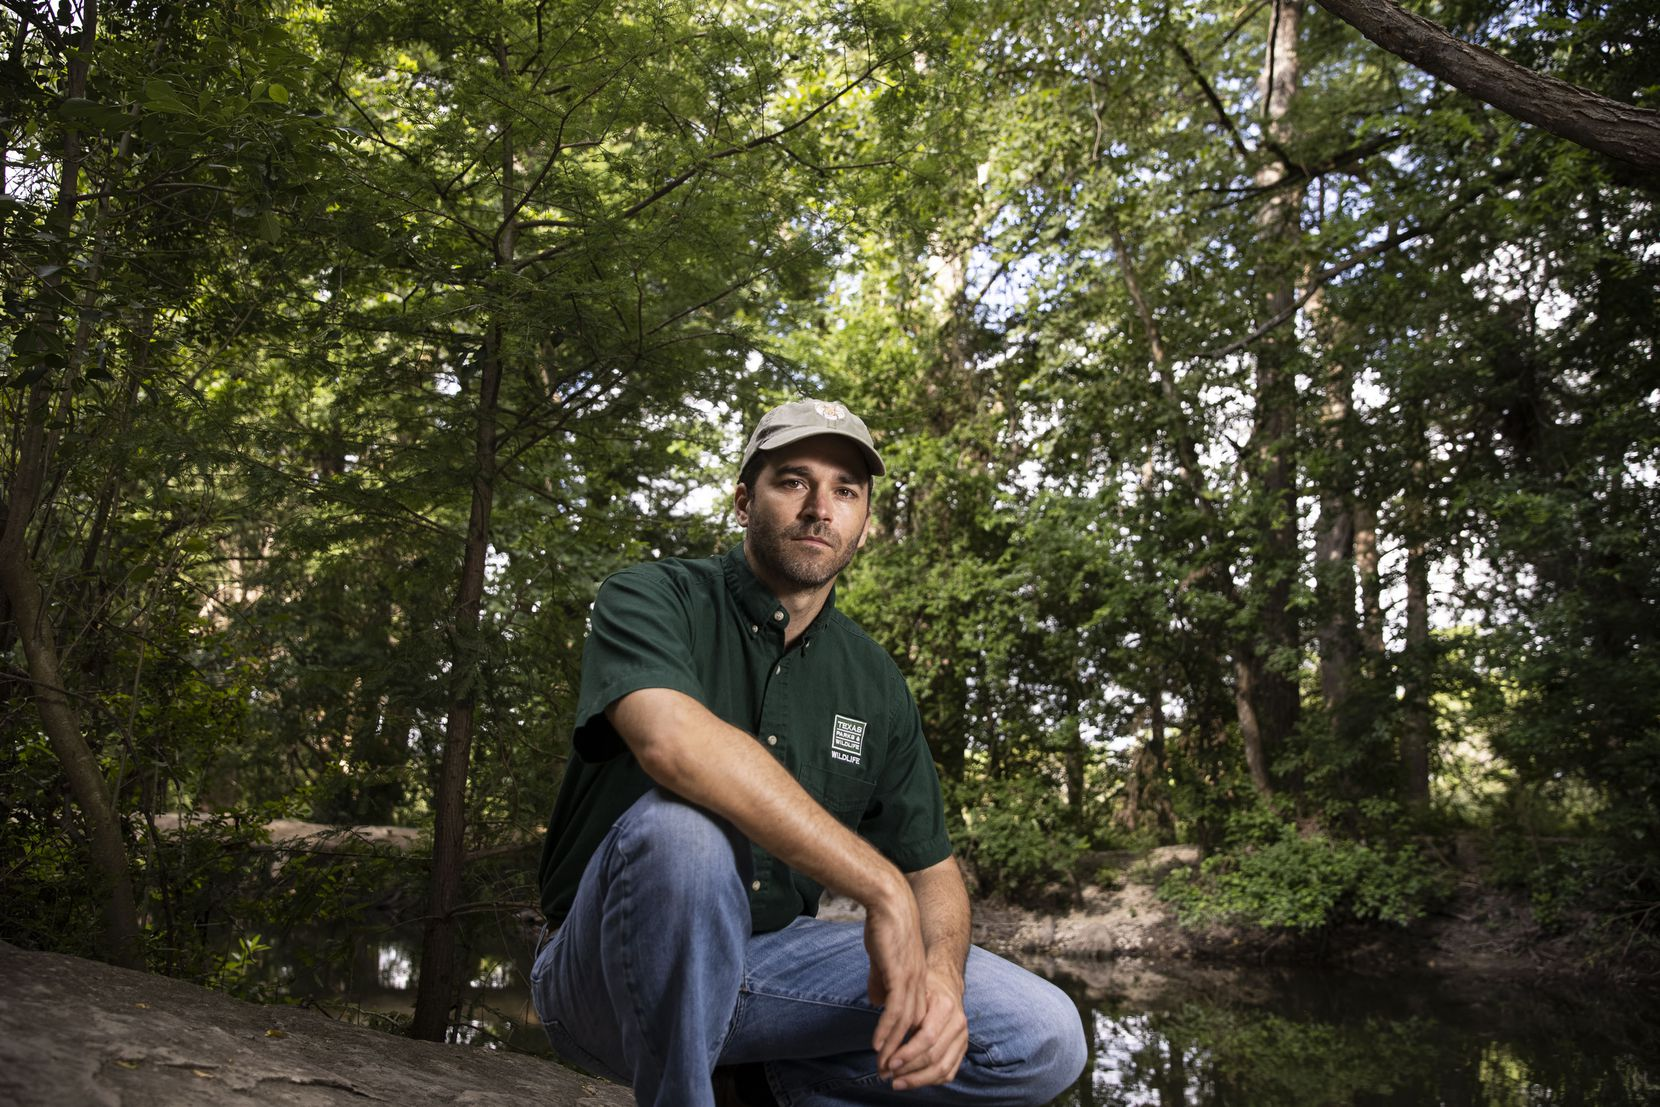 Texas Park and Wildlife State Mammalogist Jonah Evans poses for a portrait at the Cibolo Nature Center in Boerne on Wednesday, June 23, 2021.